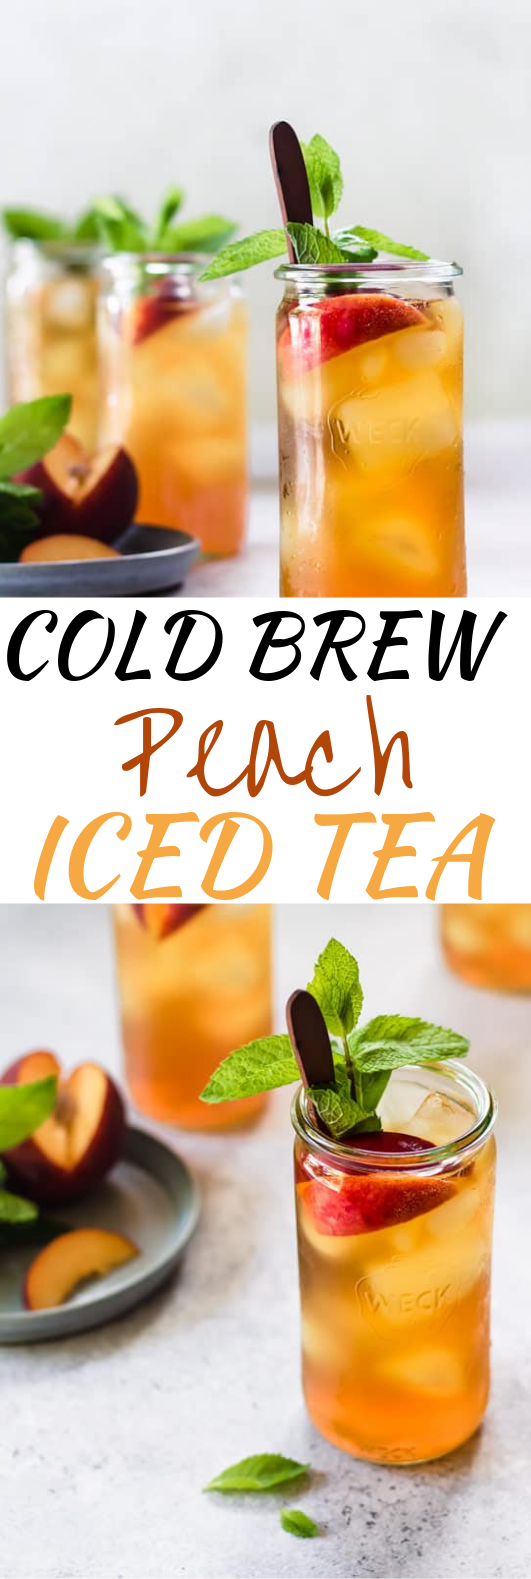 Cold Brew Peach Iced Tea #summer #drinks